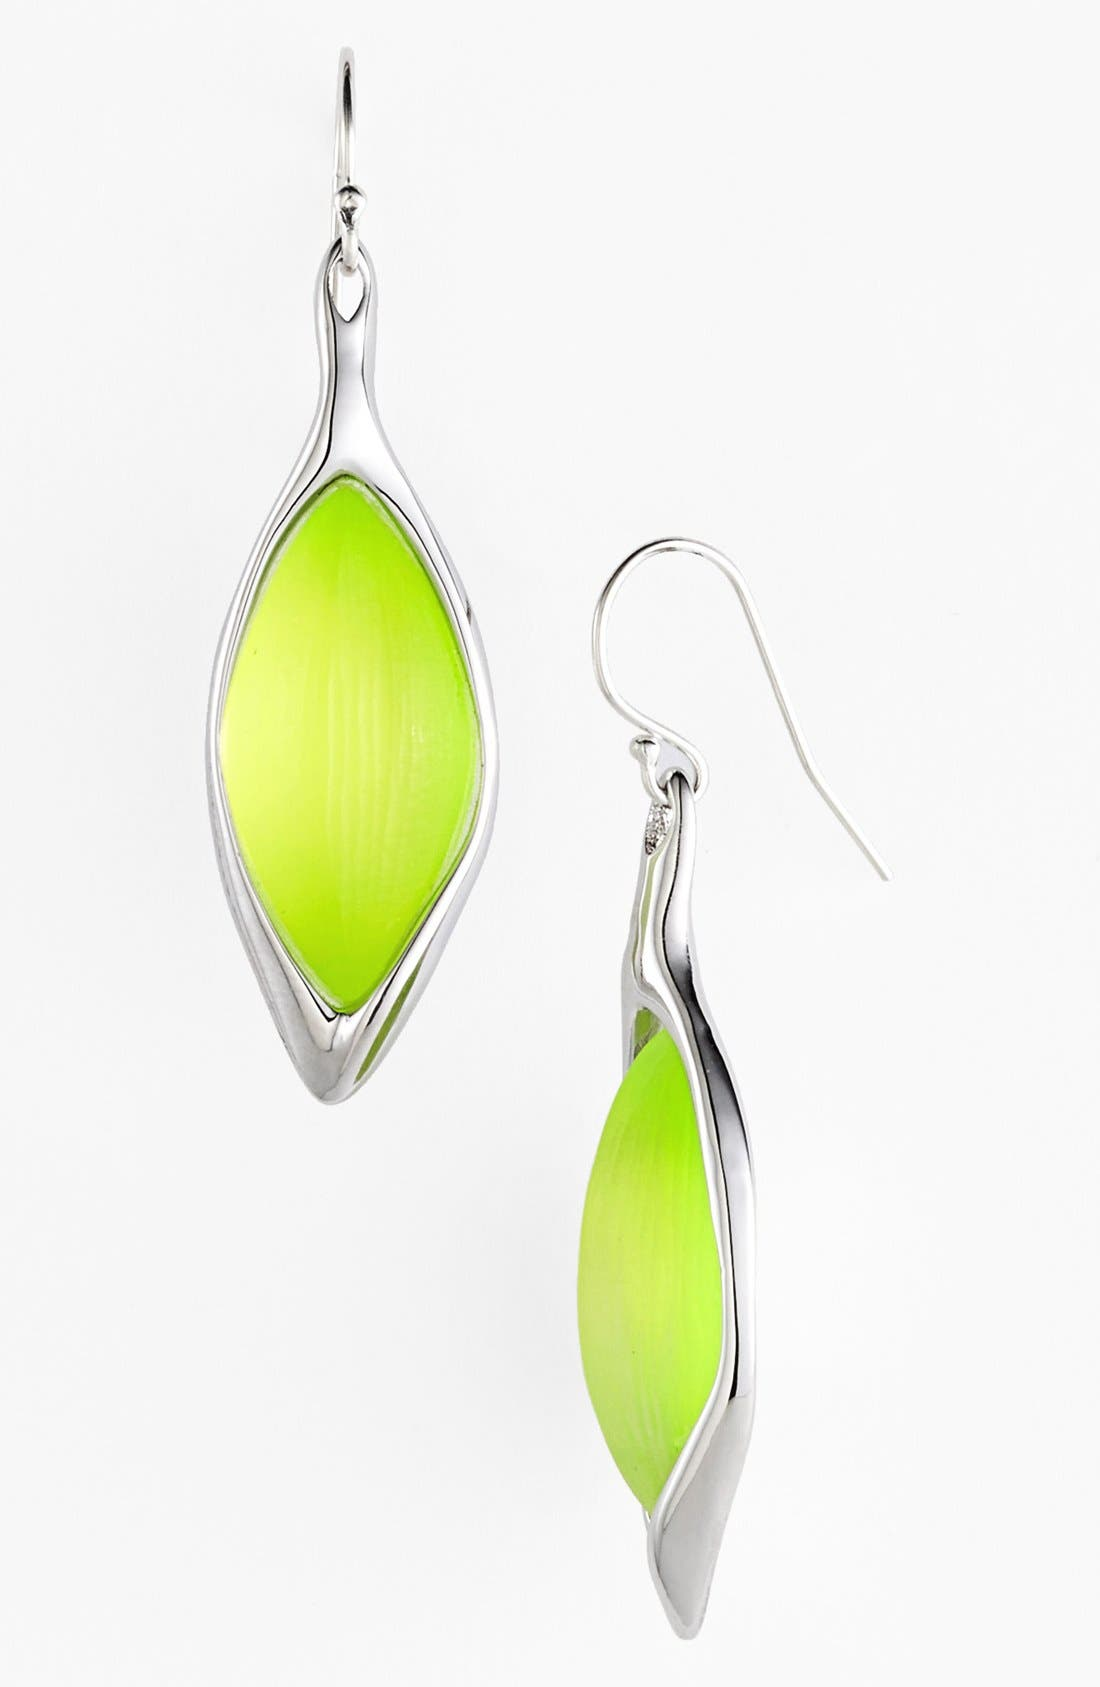 Main Image - Alexis Bittar 'Lucite® - Neon Deco' Drop Earrings